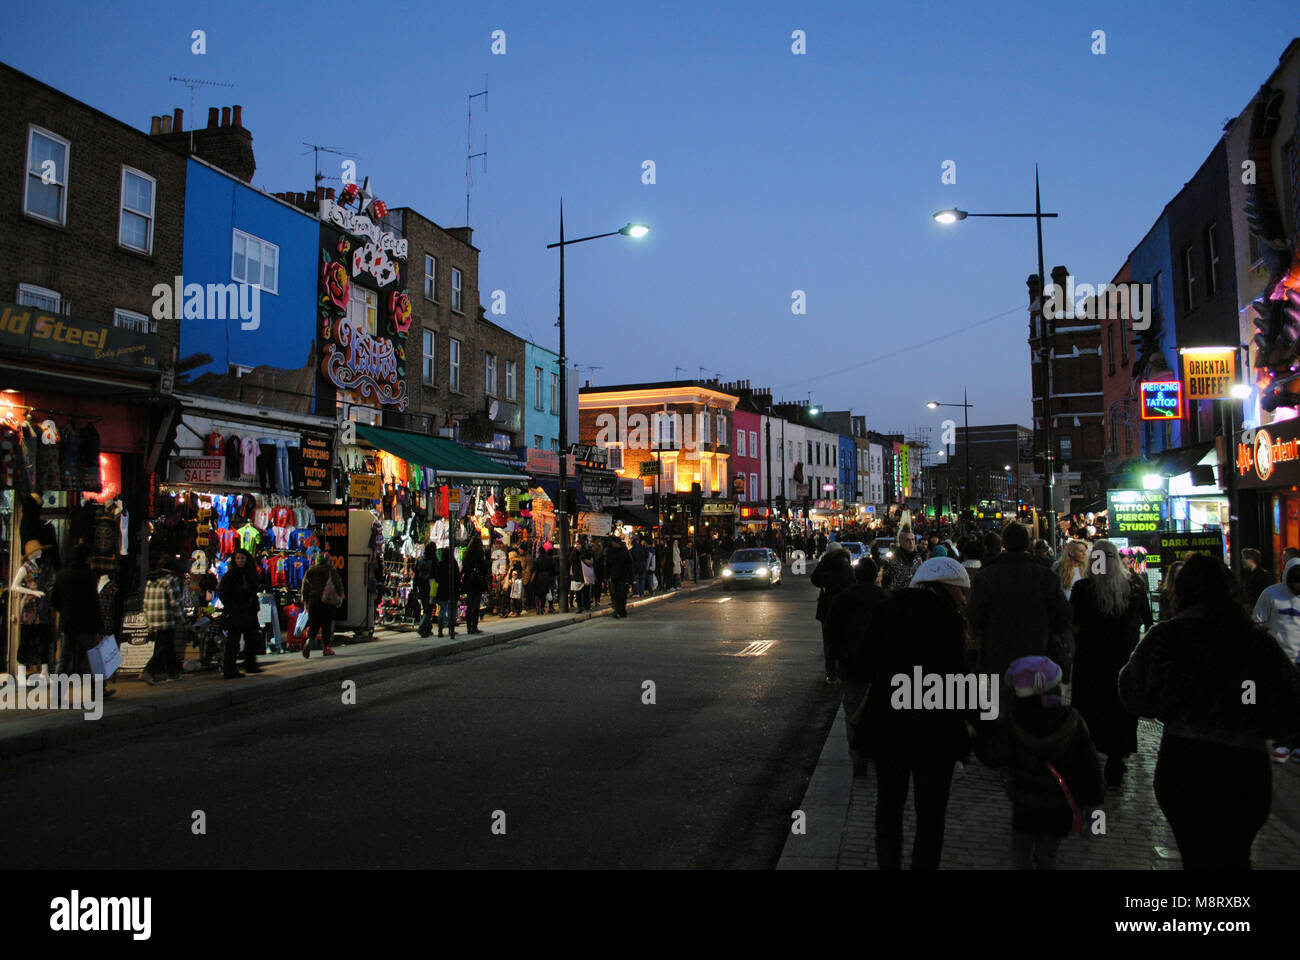 The bustling crowd at Camden Market in London, United Kingdom. - Stock Image